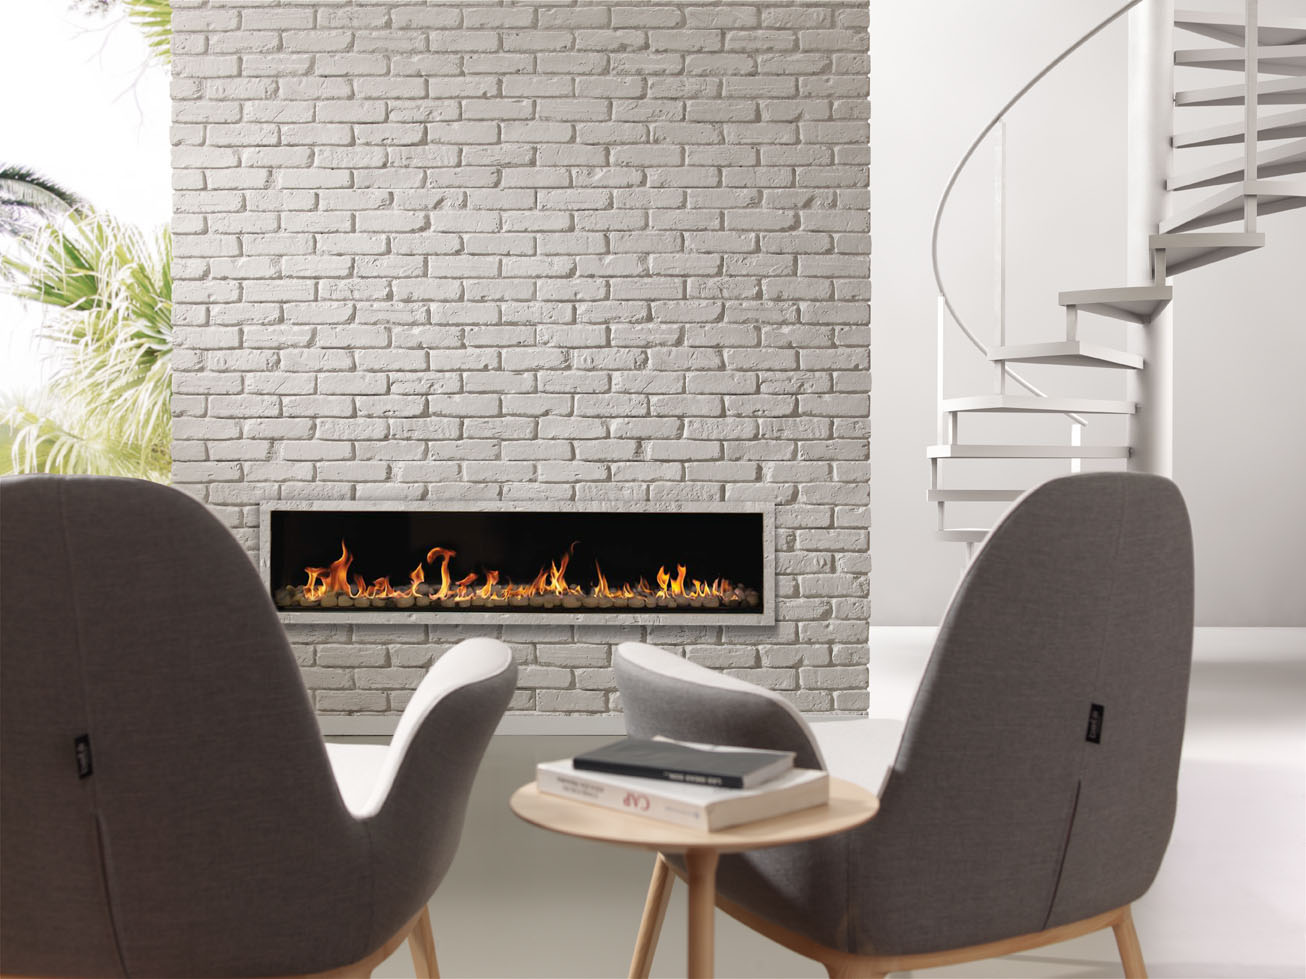 Decoration Murale Design 3d British Brick - Ladrillo Ingles